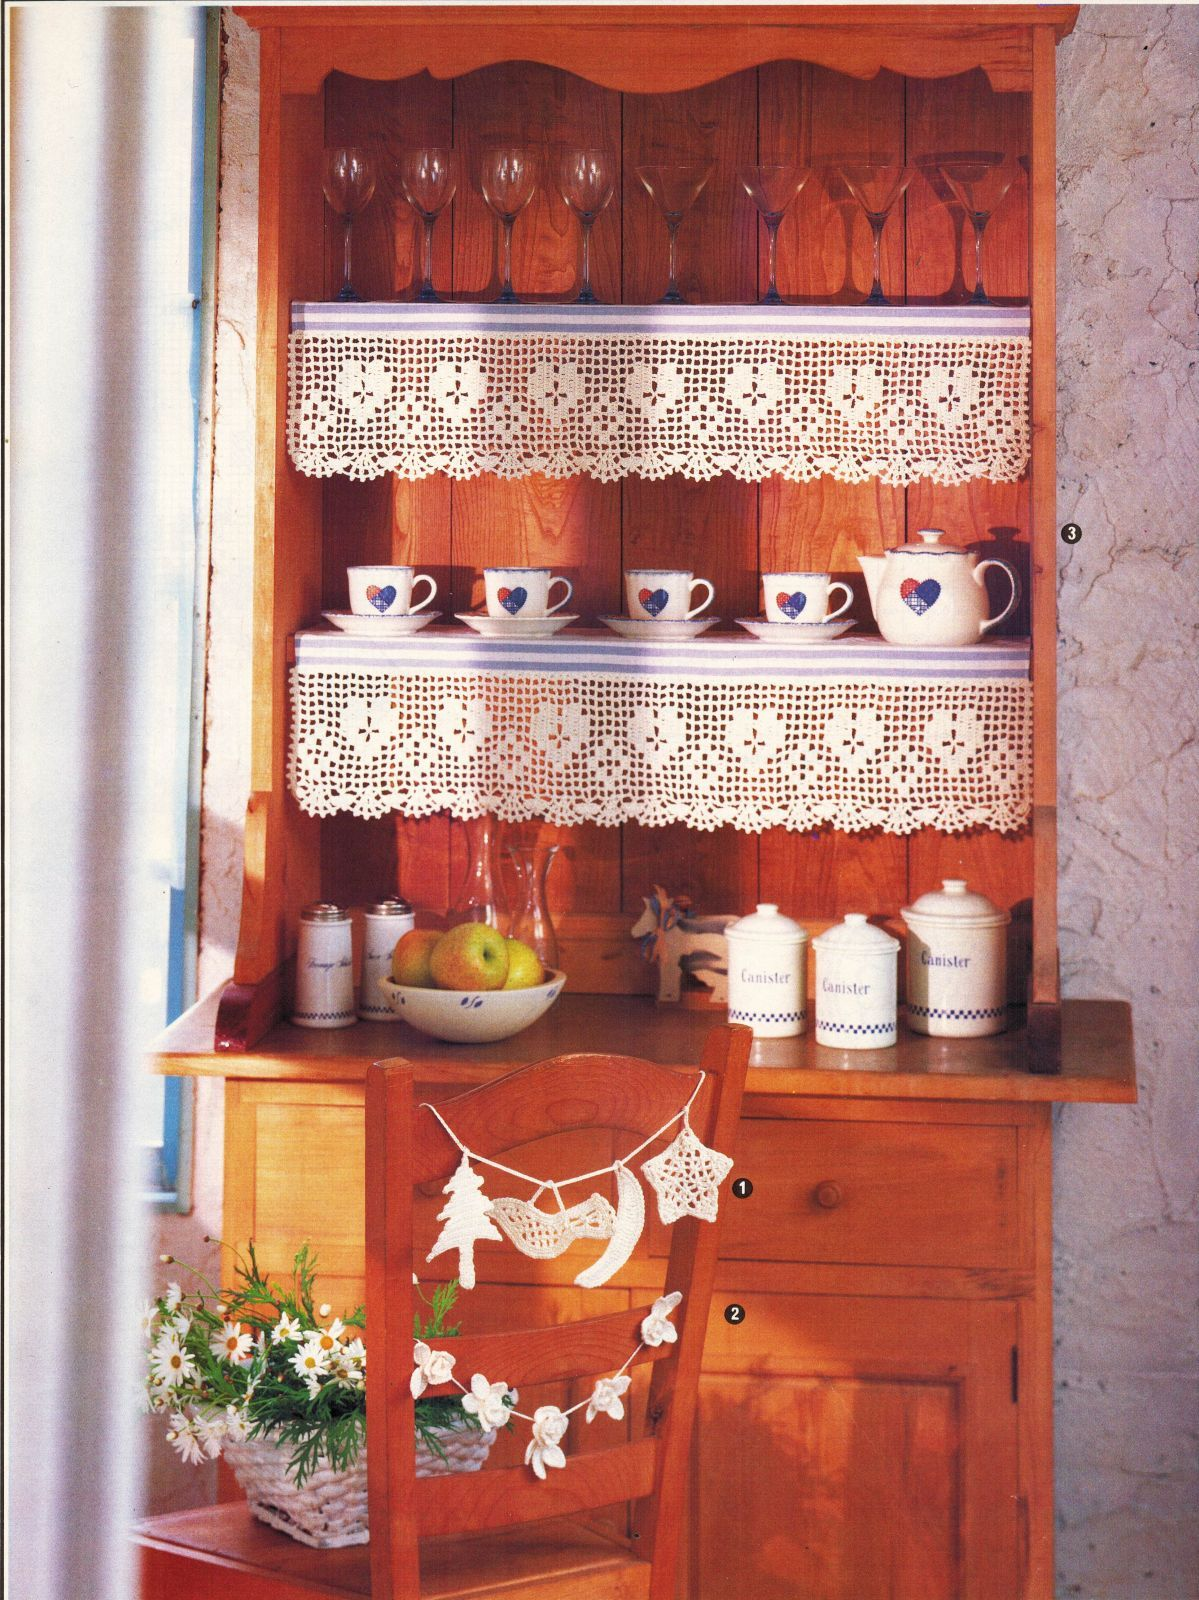 Land of Smiles Asian Wall Decor Country Hutch Garland Shelf Lace CROCHET Pattern image 2